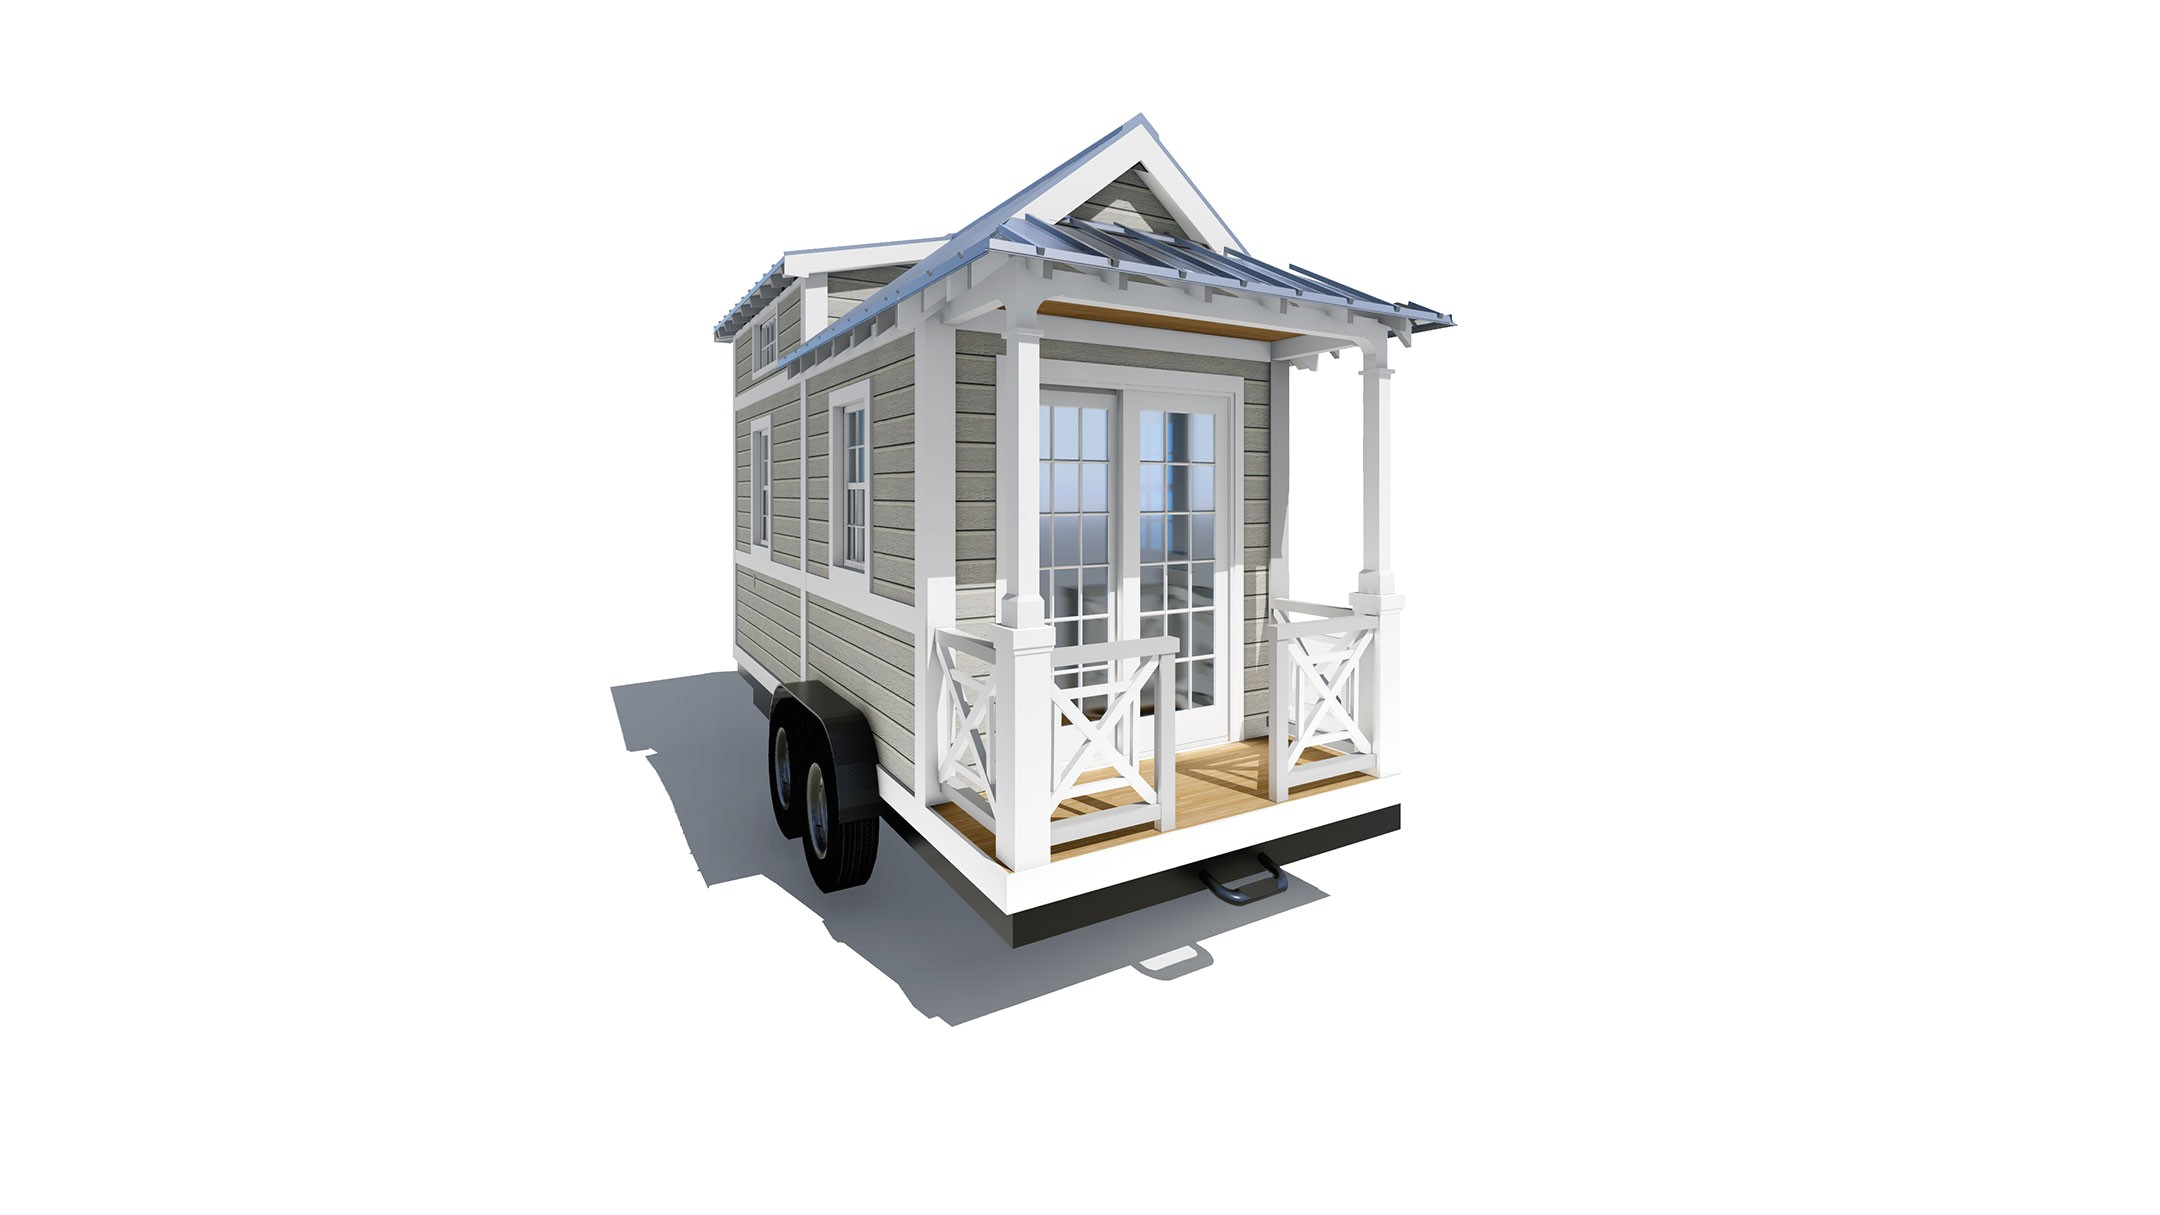 84 lumber now offers micro home plans